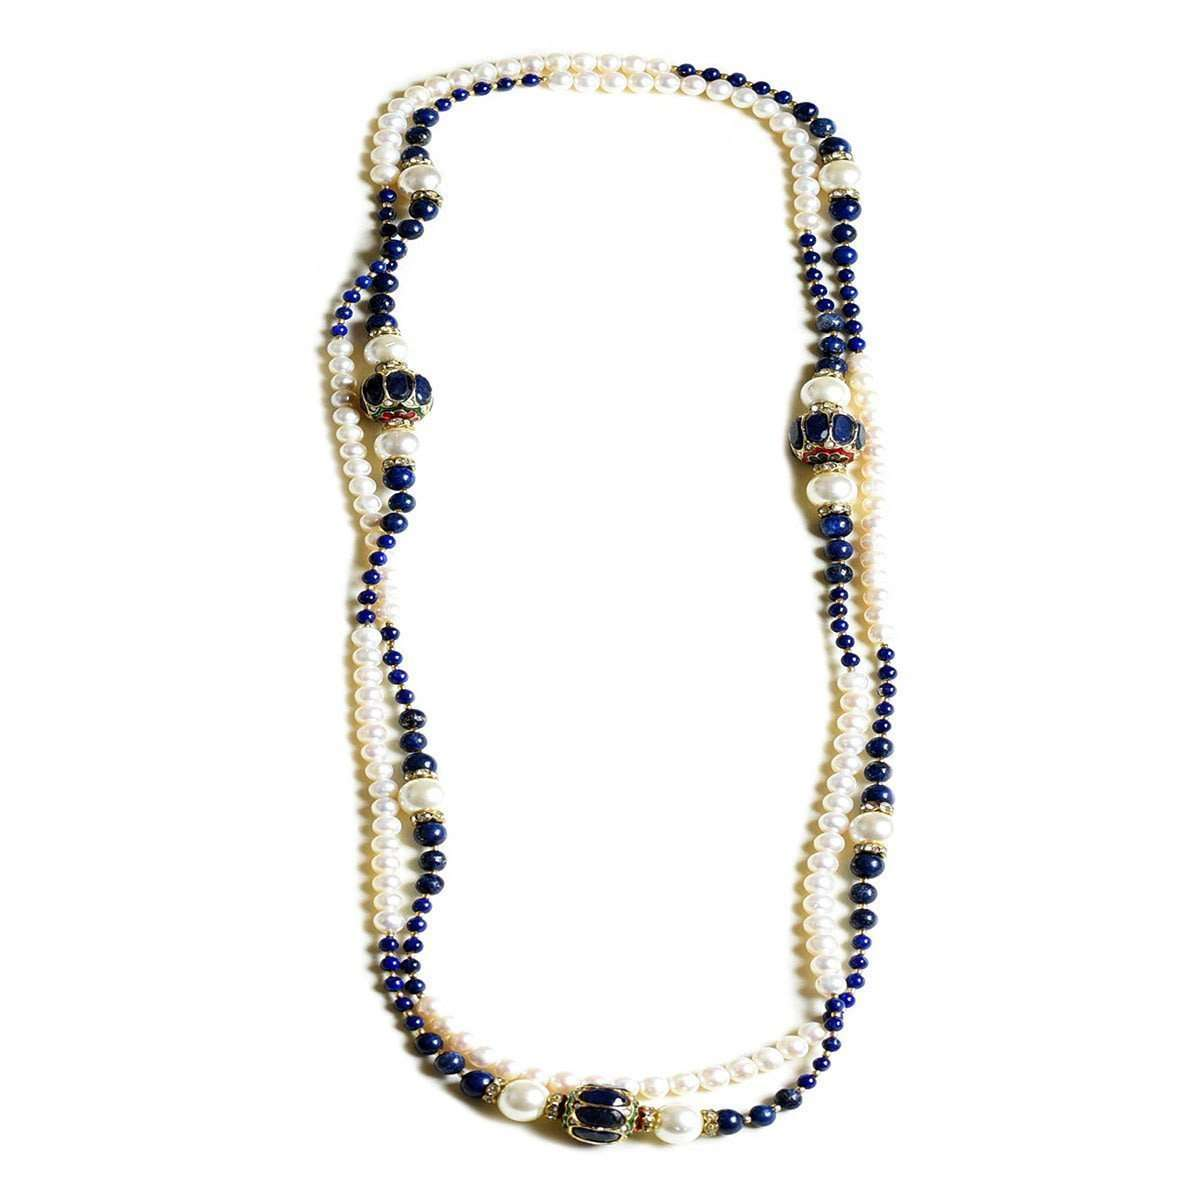 Magnifique Pearl Necklace with Lapiz Lazuli,Diamantes and Beads-M's Gems by Mamta Valrani-JewelStreet US